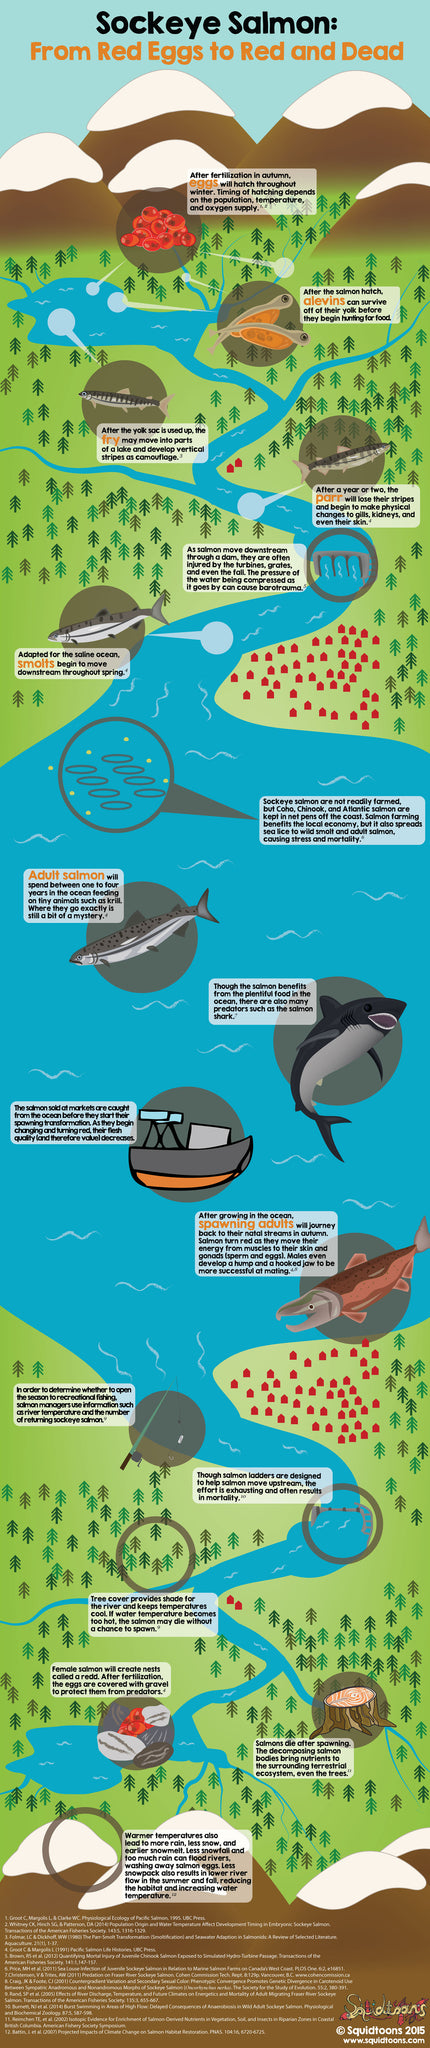 From Red to Dead Sockeye Lifecycle Infographic Squidtoons www.squidtoons.com